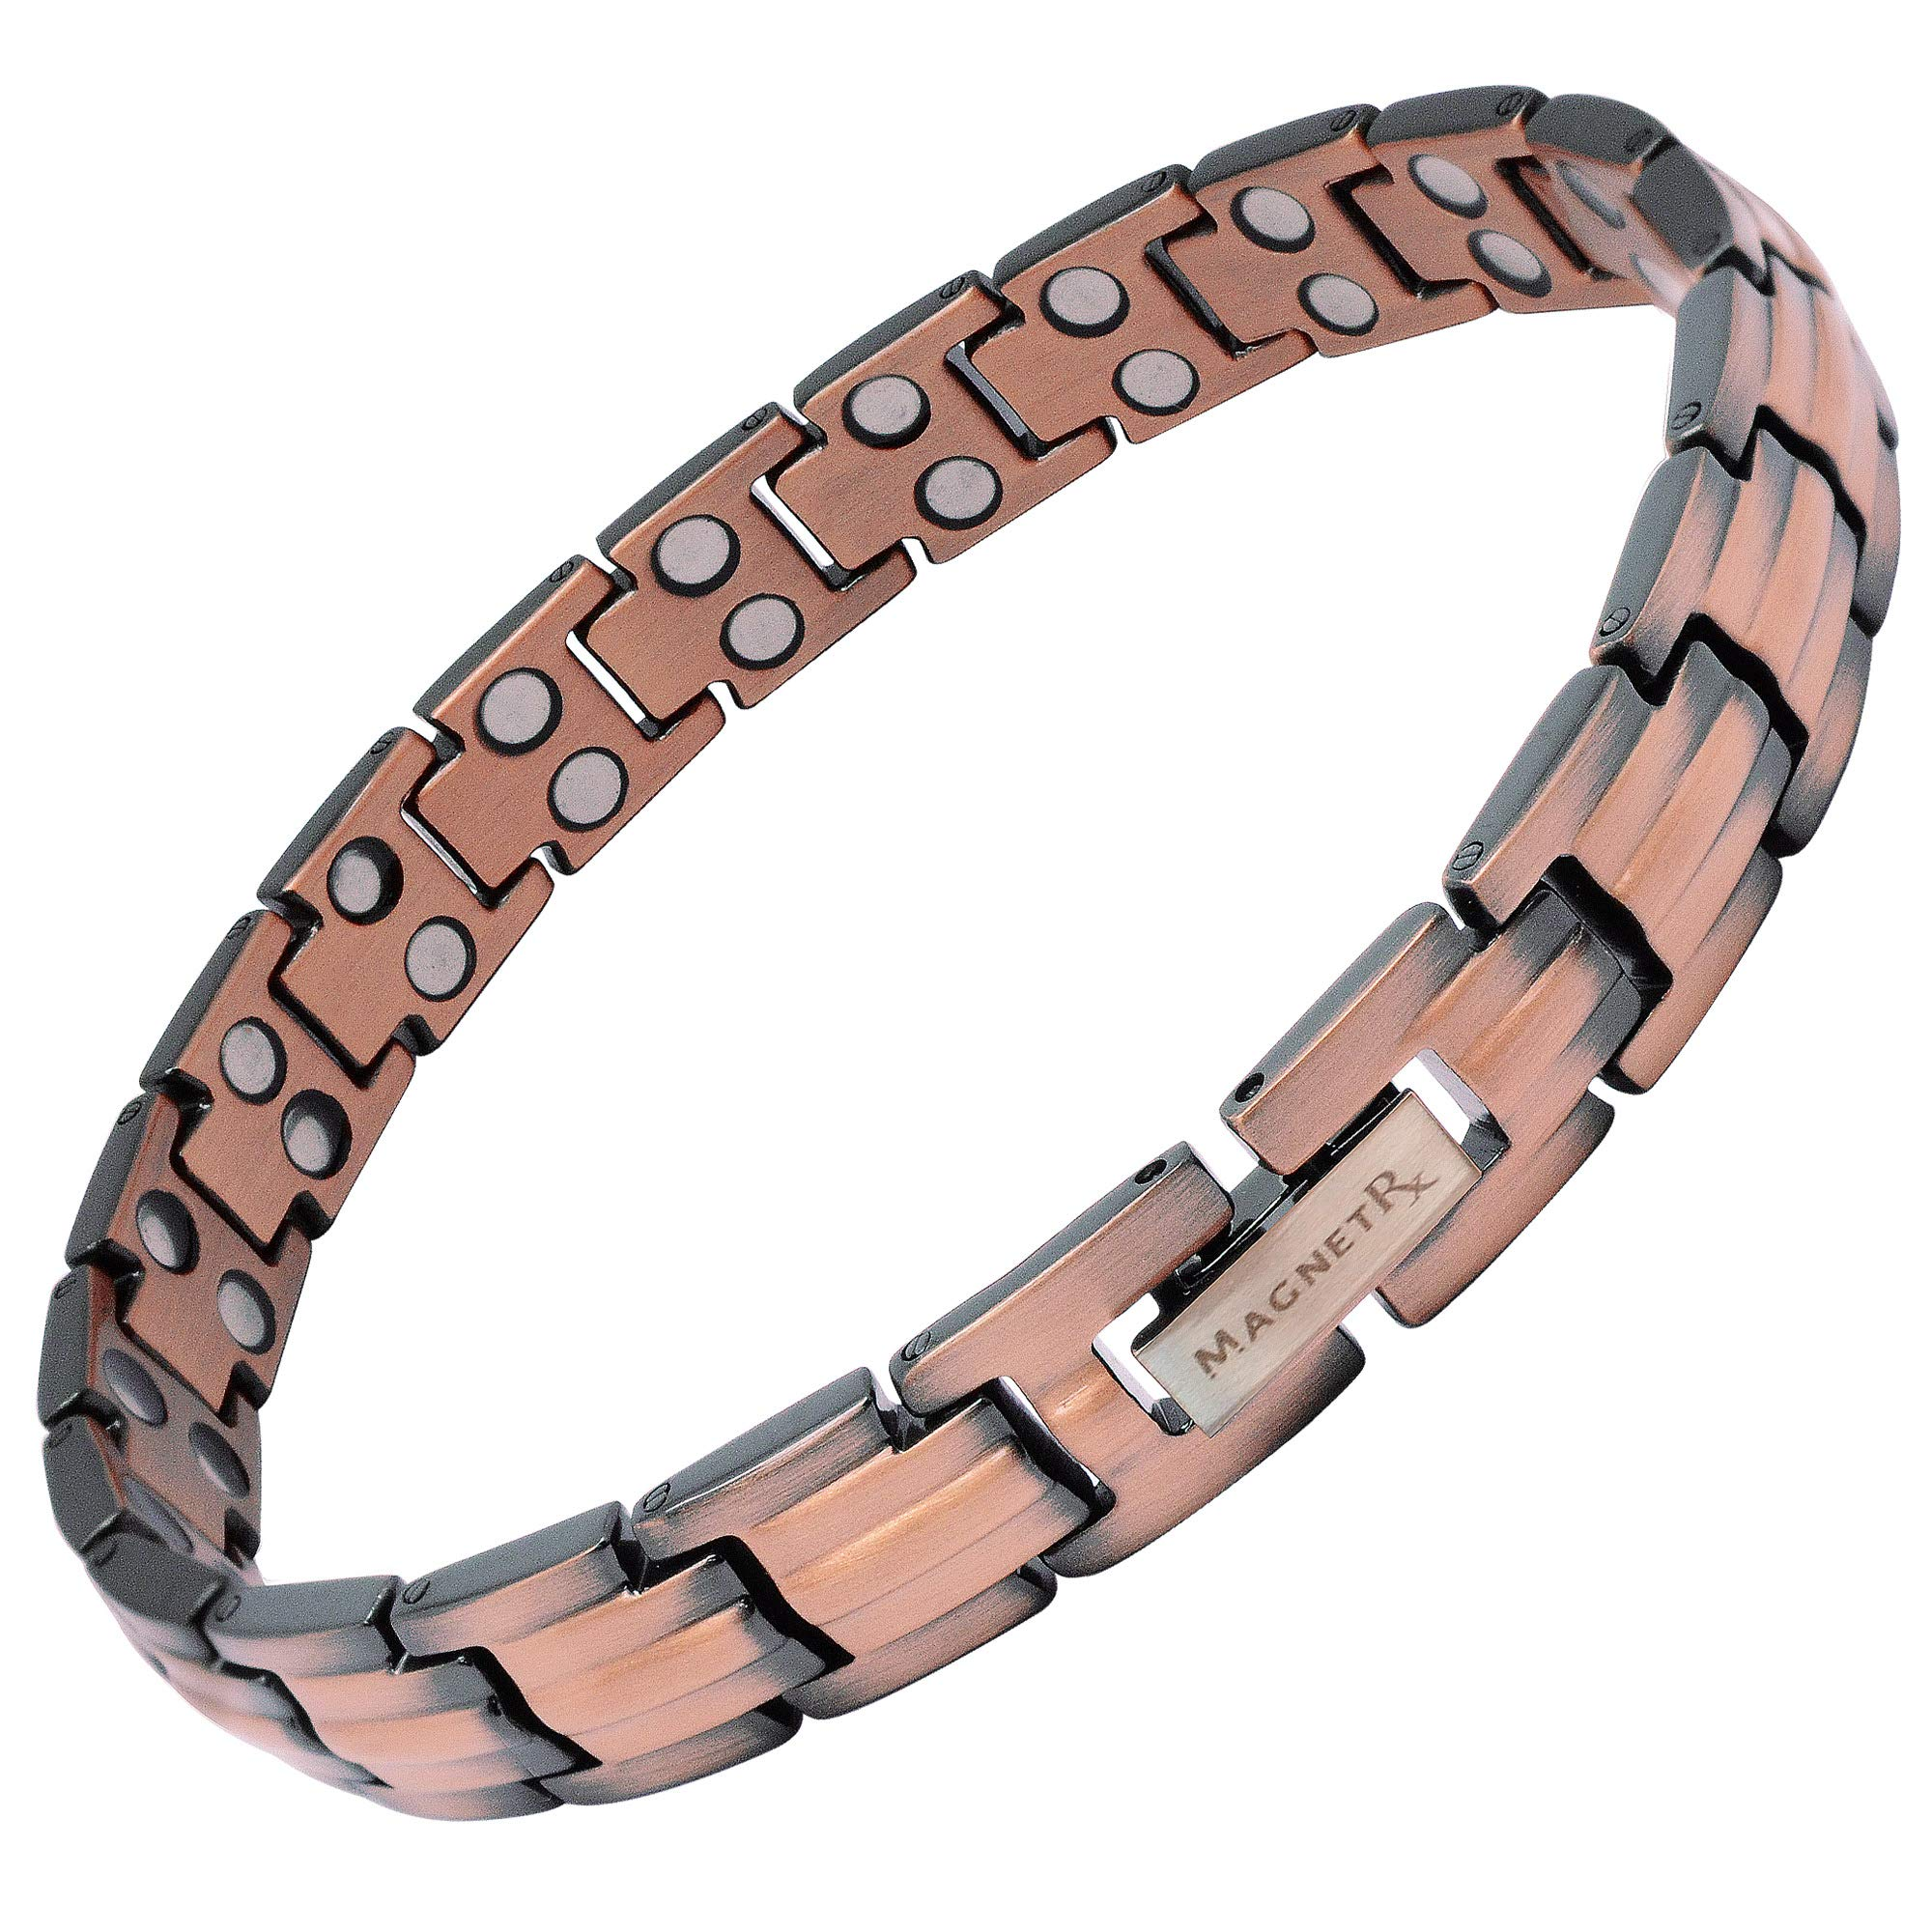 MagnetRX Women's Pure Copper Magnetic Therapy Bracelet Ultra Strength Double Magnet Pain Relief for Arthritis and Carpal Tunnel by MagnetRX